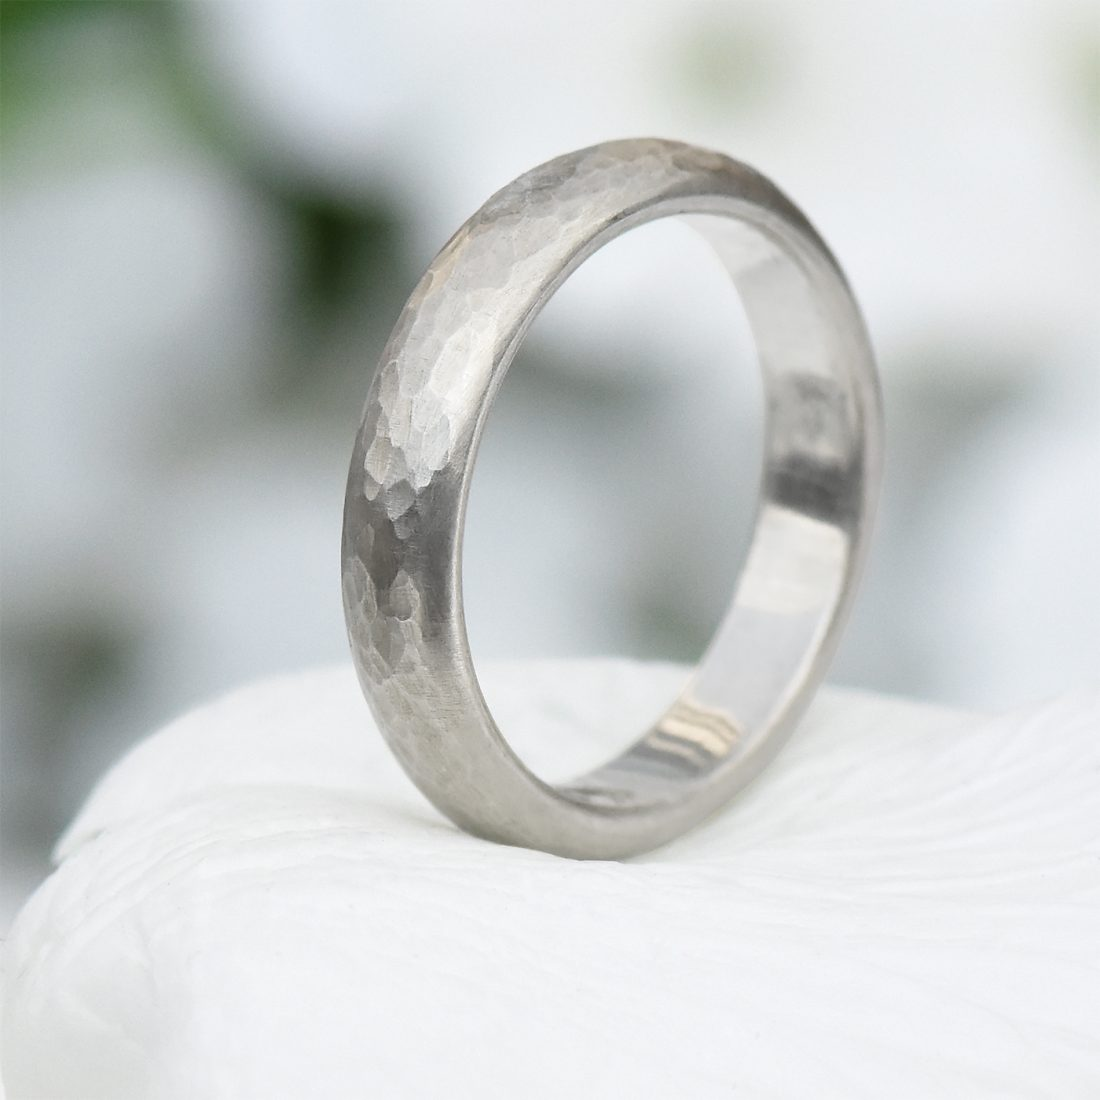 4mm hammered silver ring